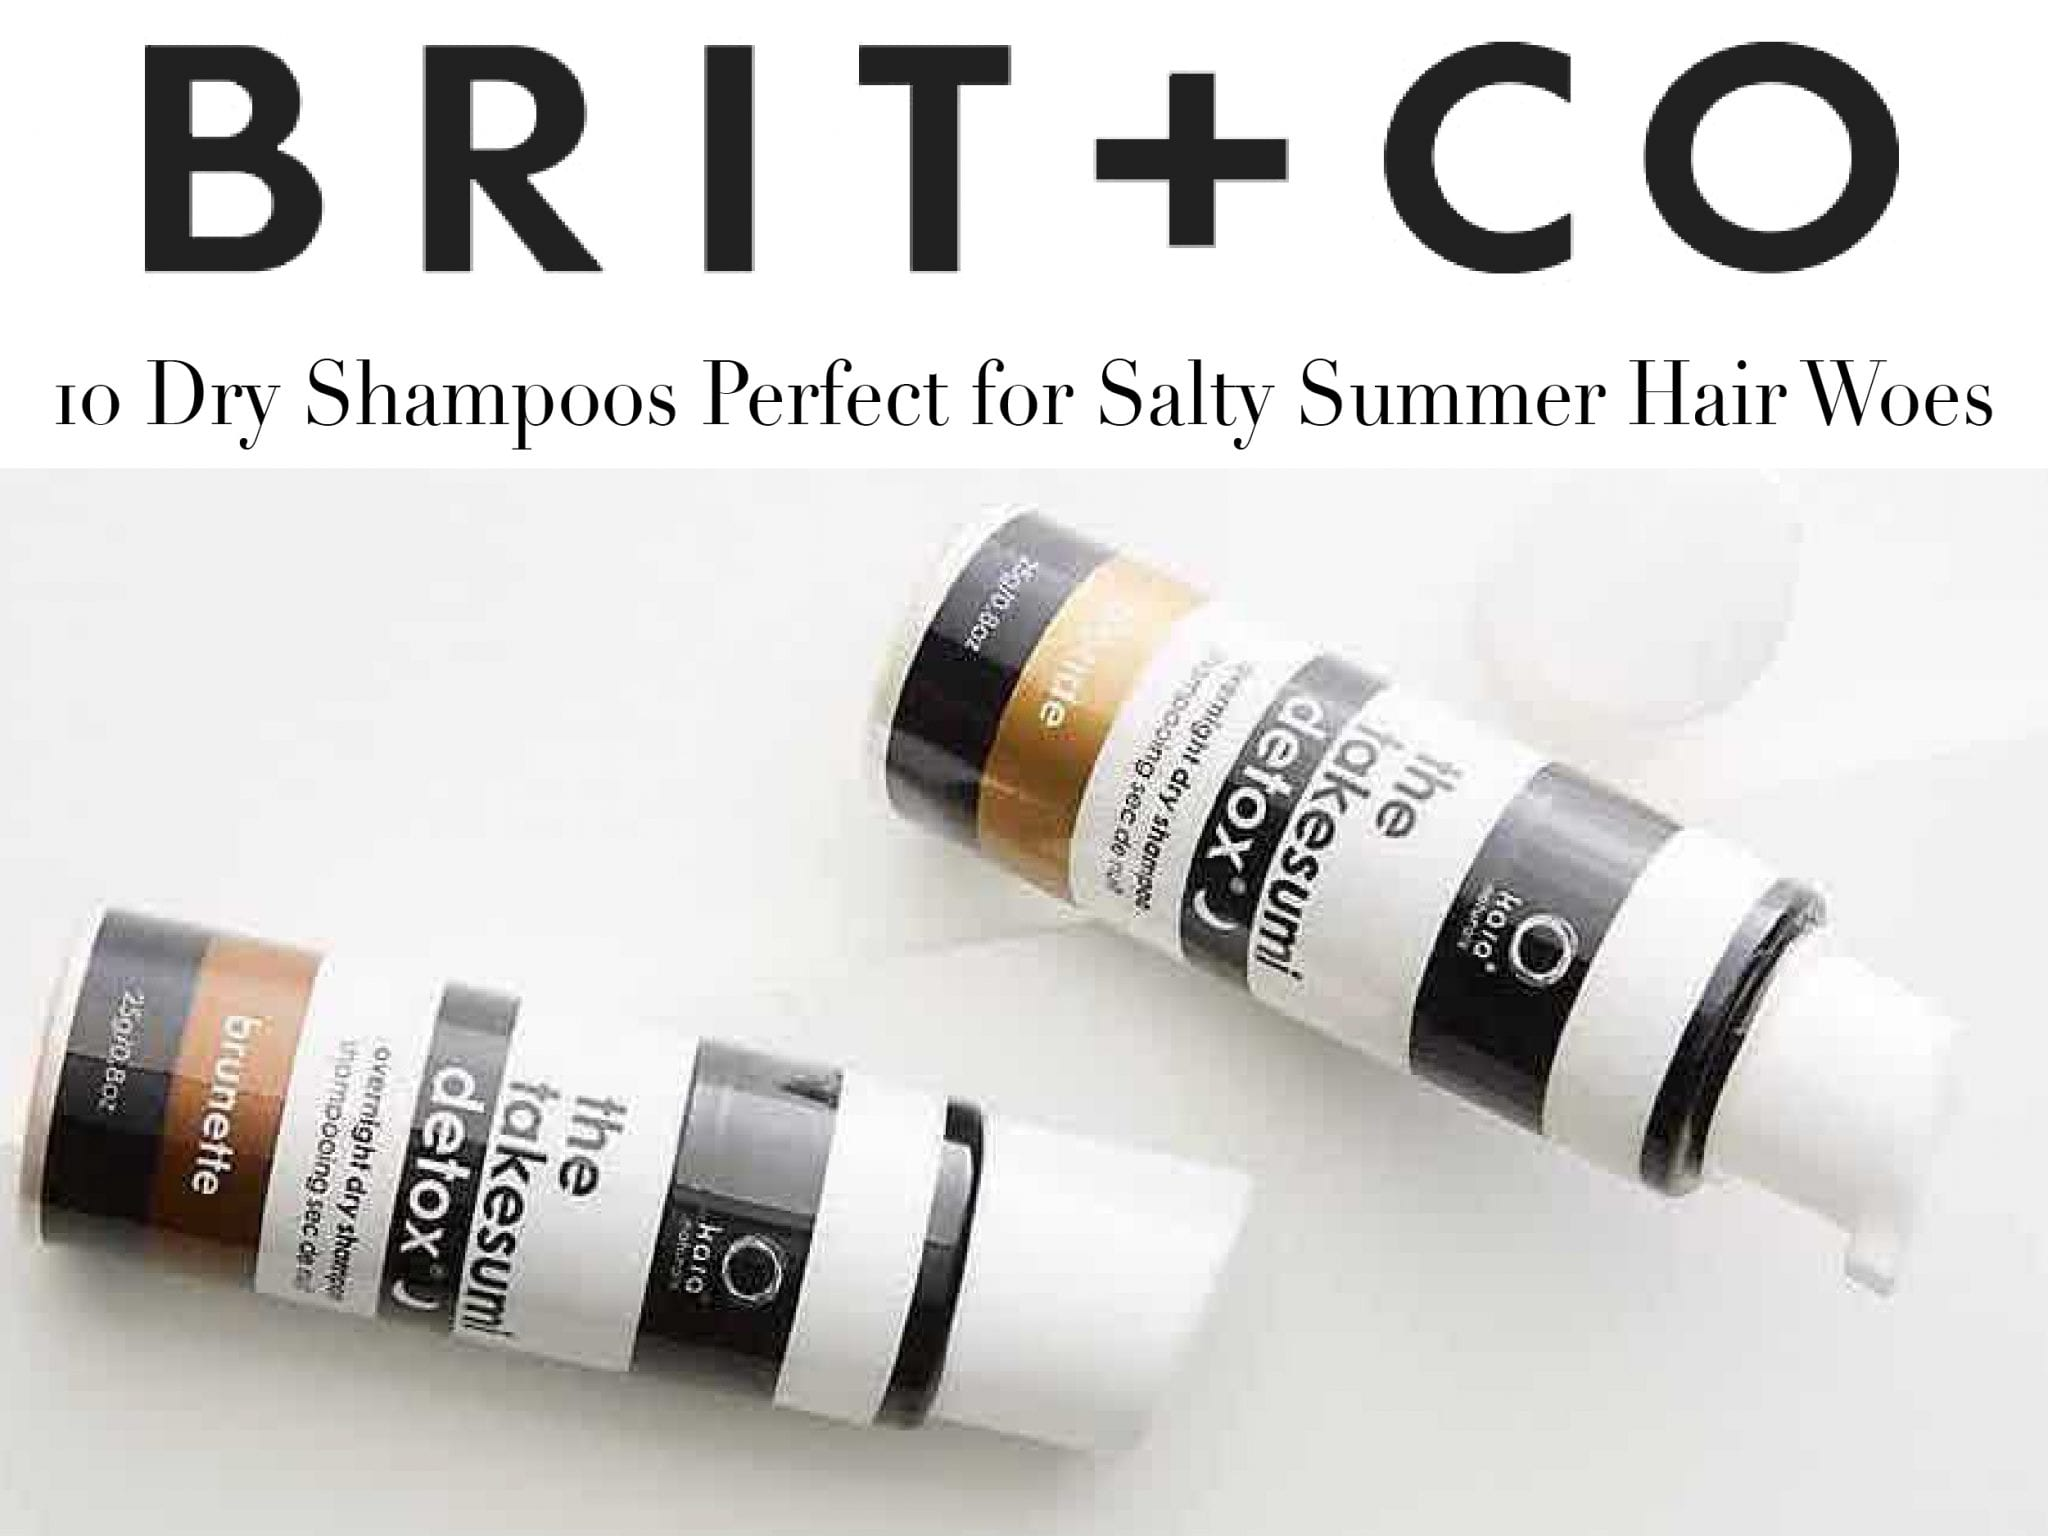 Brit+Co- 10 Dry Shampoos Perfect for Salty Summer Hair Woes